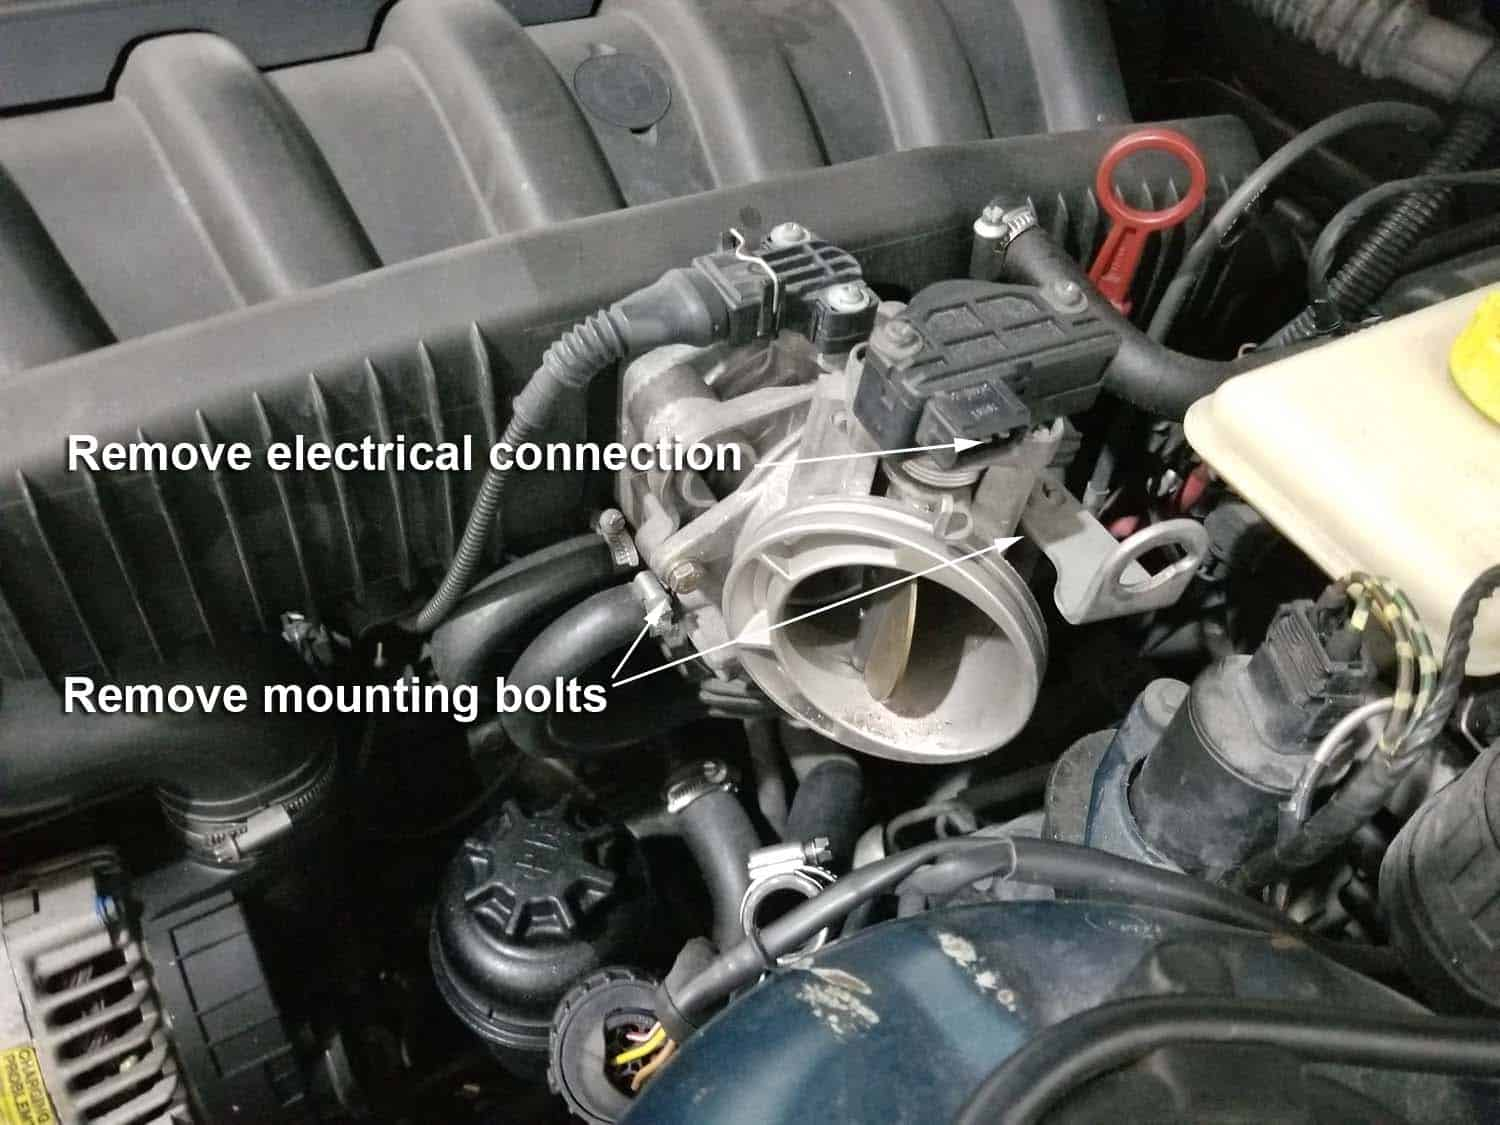 BMW E36 cold air intake - remove the ASC from vehicle